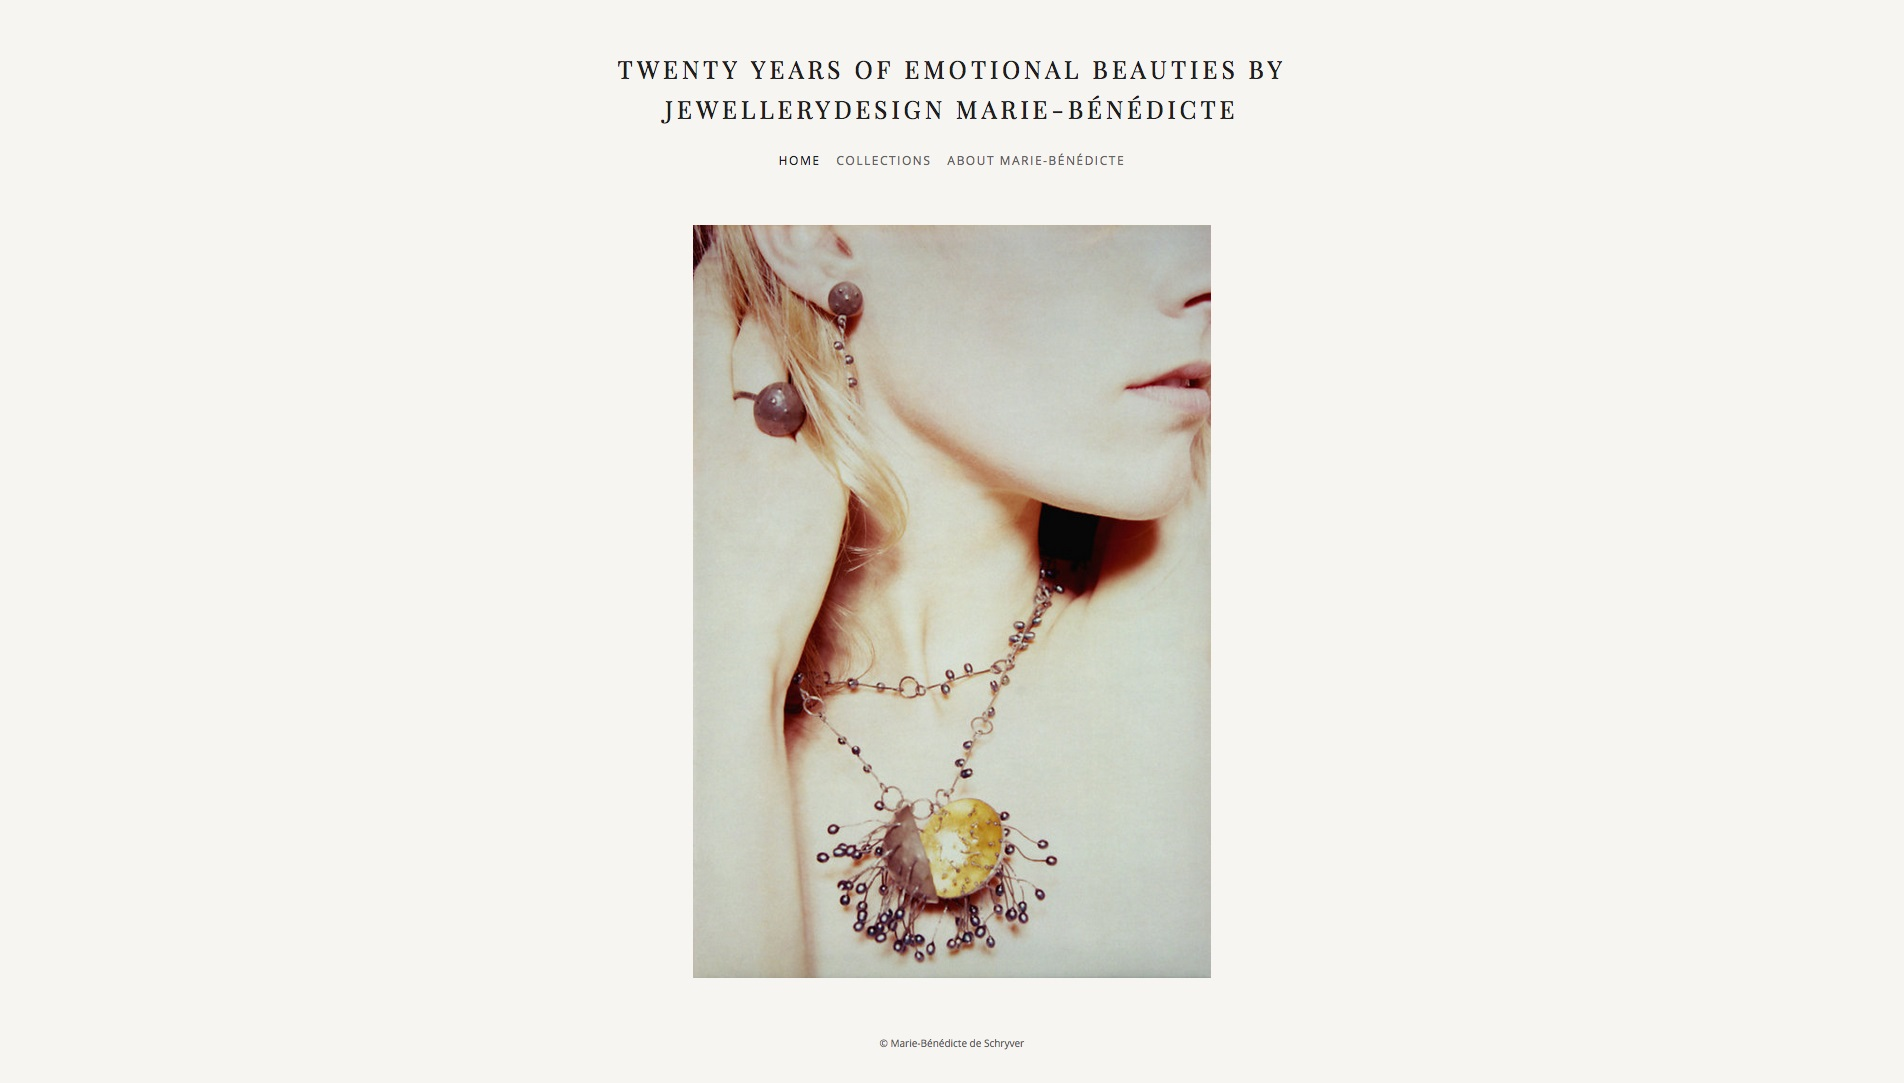 20 years of emotional beauties by Jewellerydesign Marie-Bénédicte